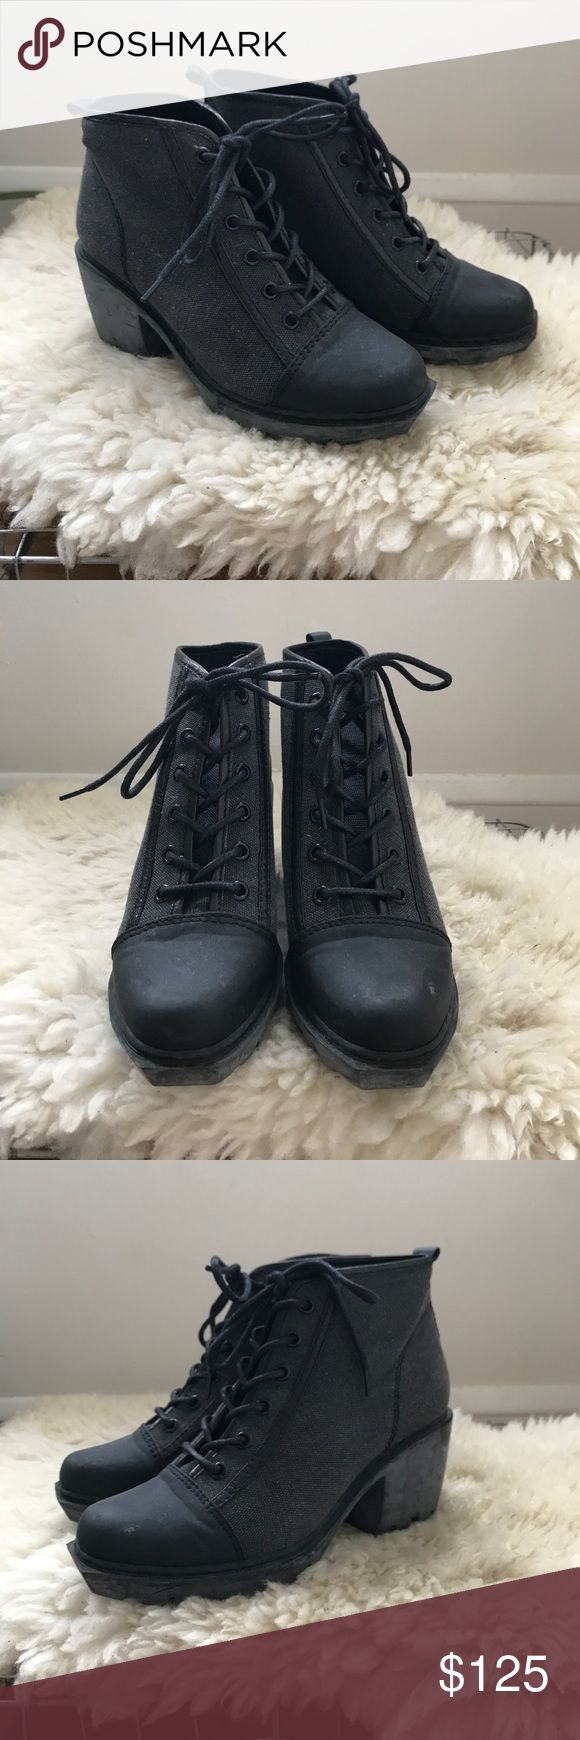 """Opening Ceremony Grunge Lace Up Sneaker Only worn a few times. One flaw in toe area, see images. Canvas/leather/rubber upper. Distressed rubber sole. Heel 2.5"""" platform .75"""" Opening Ceremony Shoes Ankle Boots & Booties"""